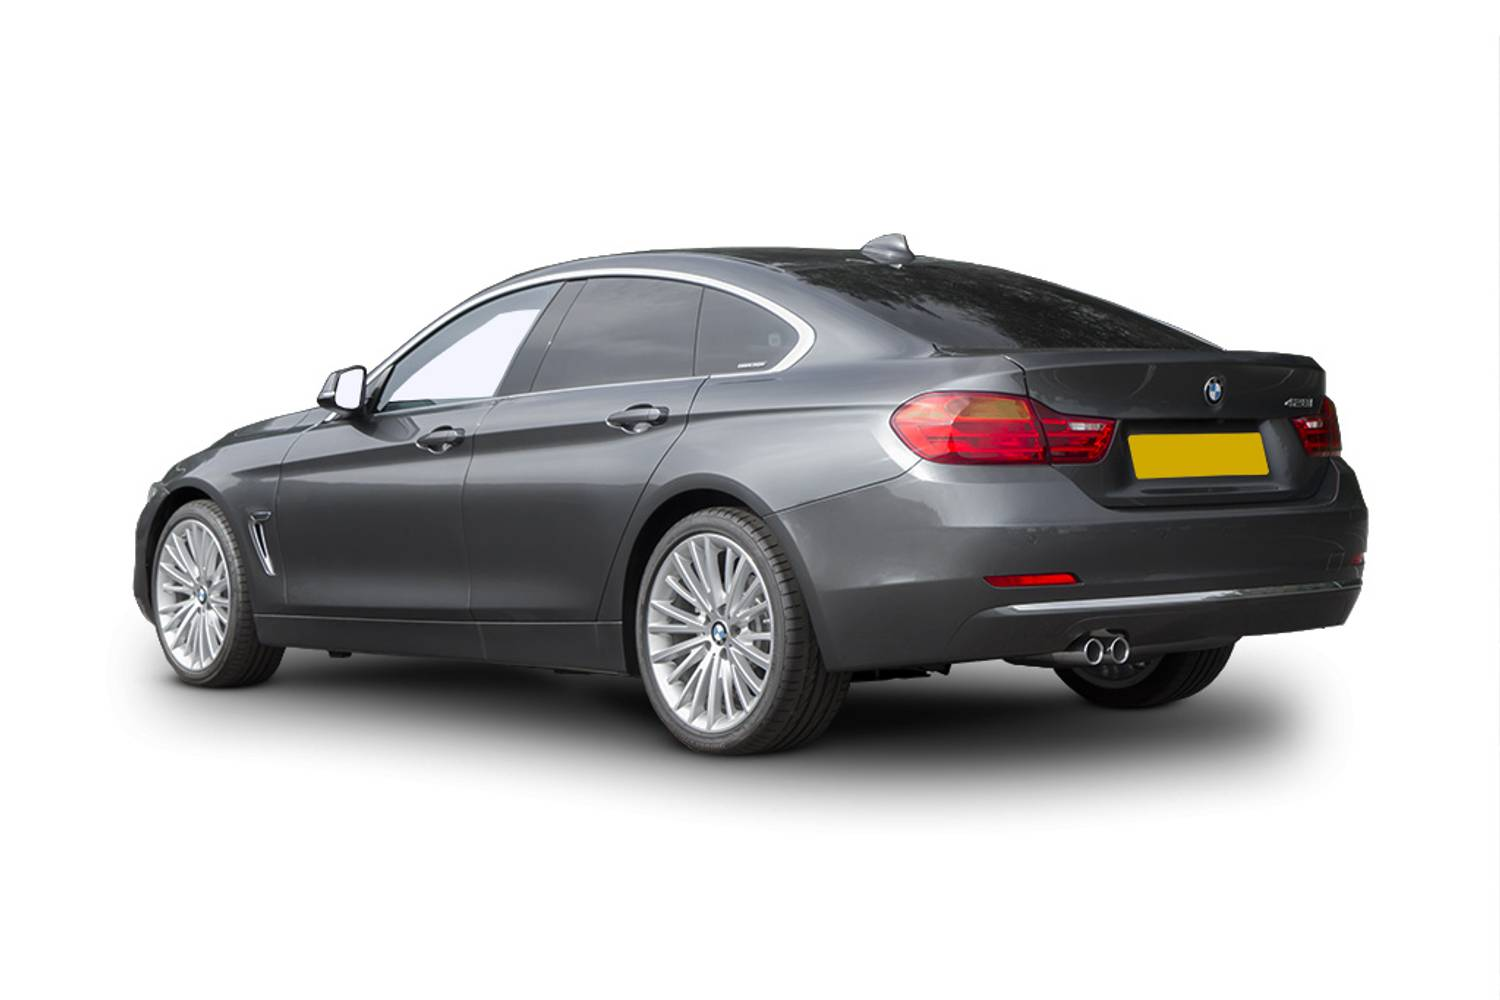 new bmw 4 series gran diesel coupe 420d 190 ps m sport 5 door auto professional media 2015. Black Bedroom Furniture Sets. Home Design Ideas